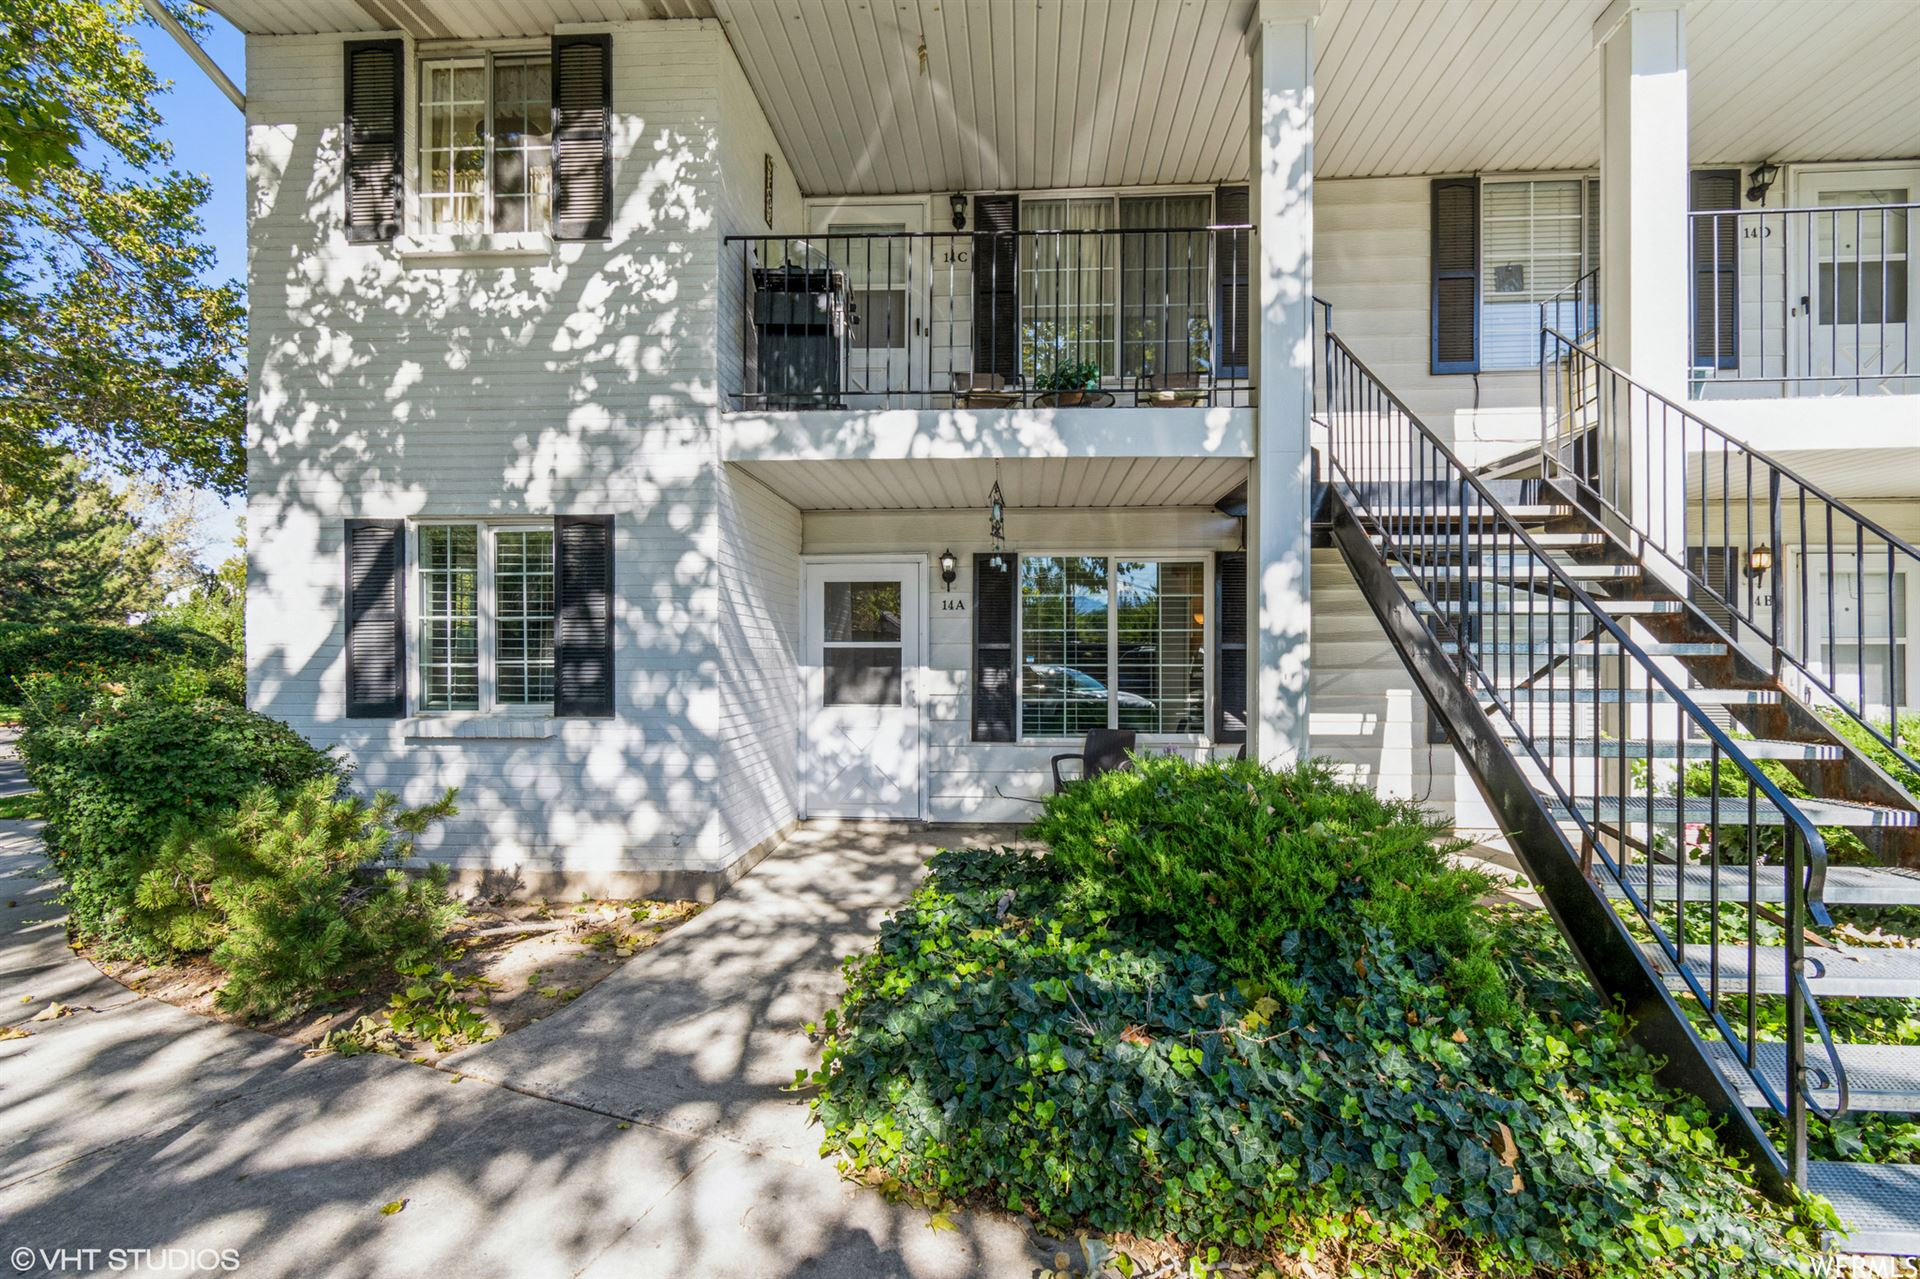 Photo of 3575 S 3200 W #14A, West Valley City, UT 84119 (MLS # 1770923)